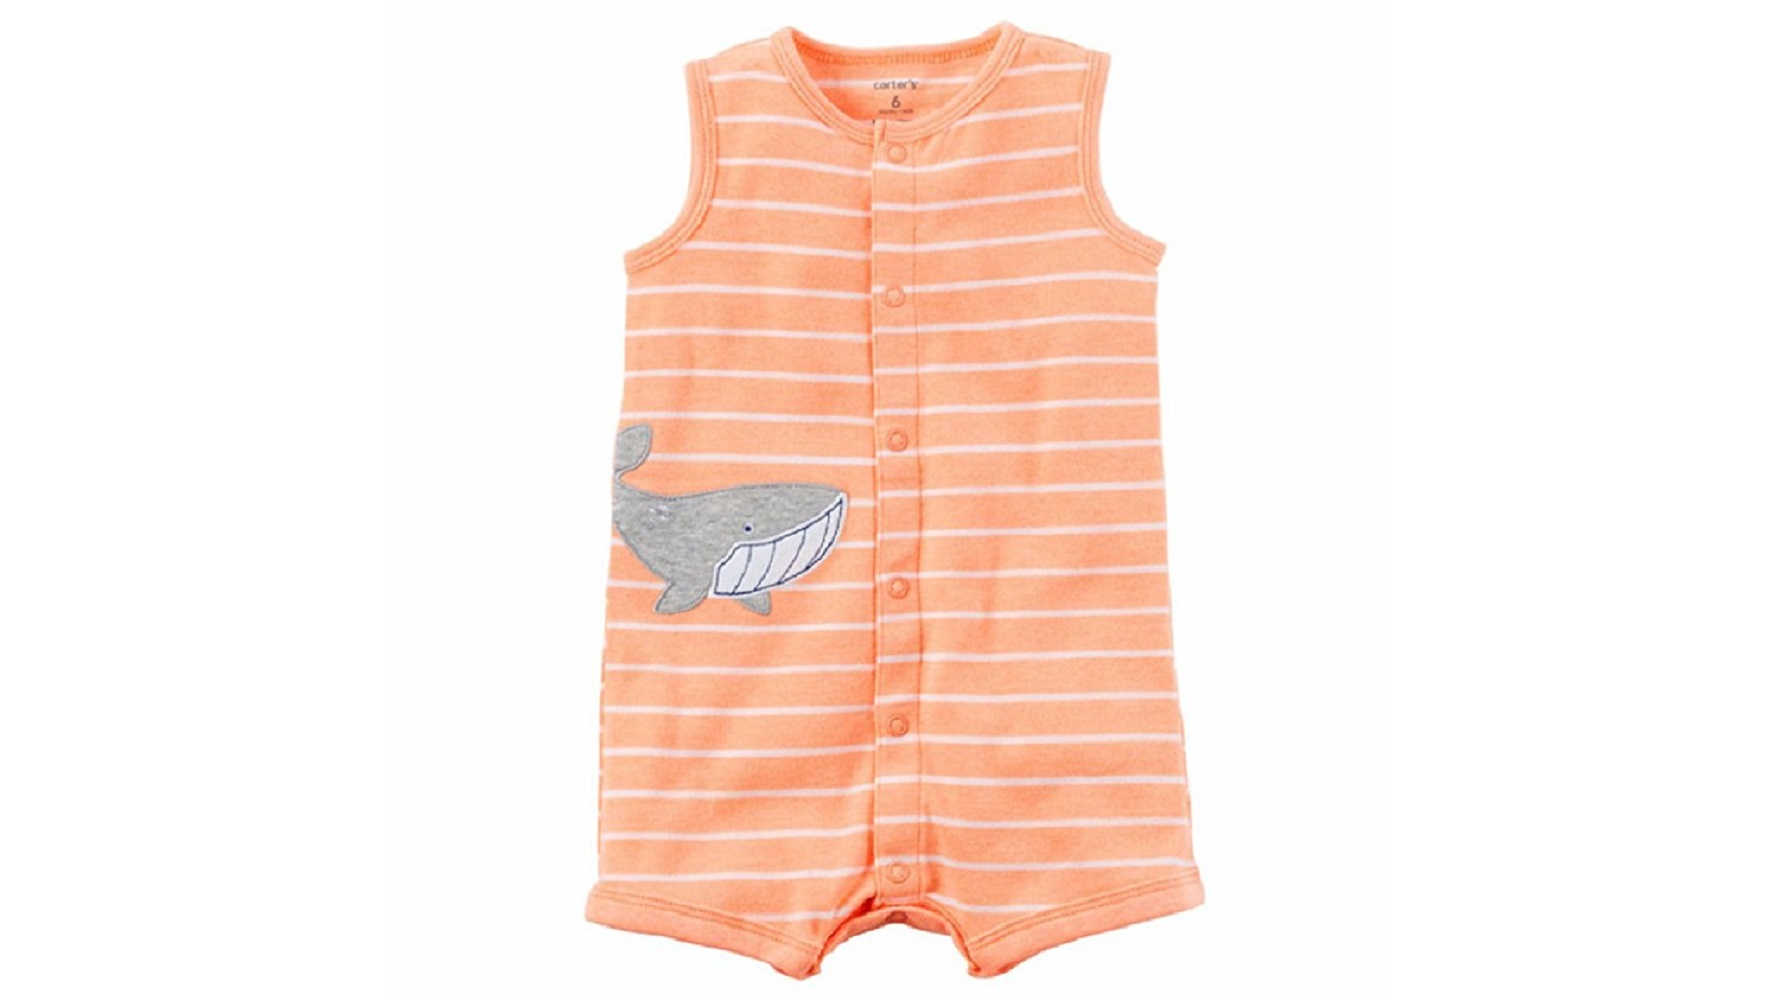 976595b60 Carters Baby Boys Size 9 Months Sleeveless